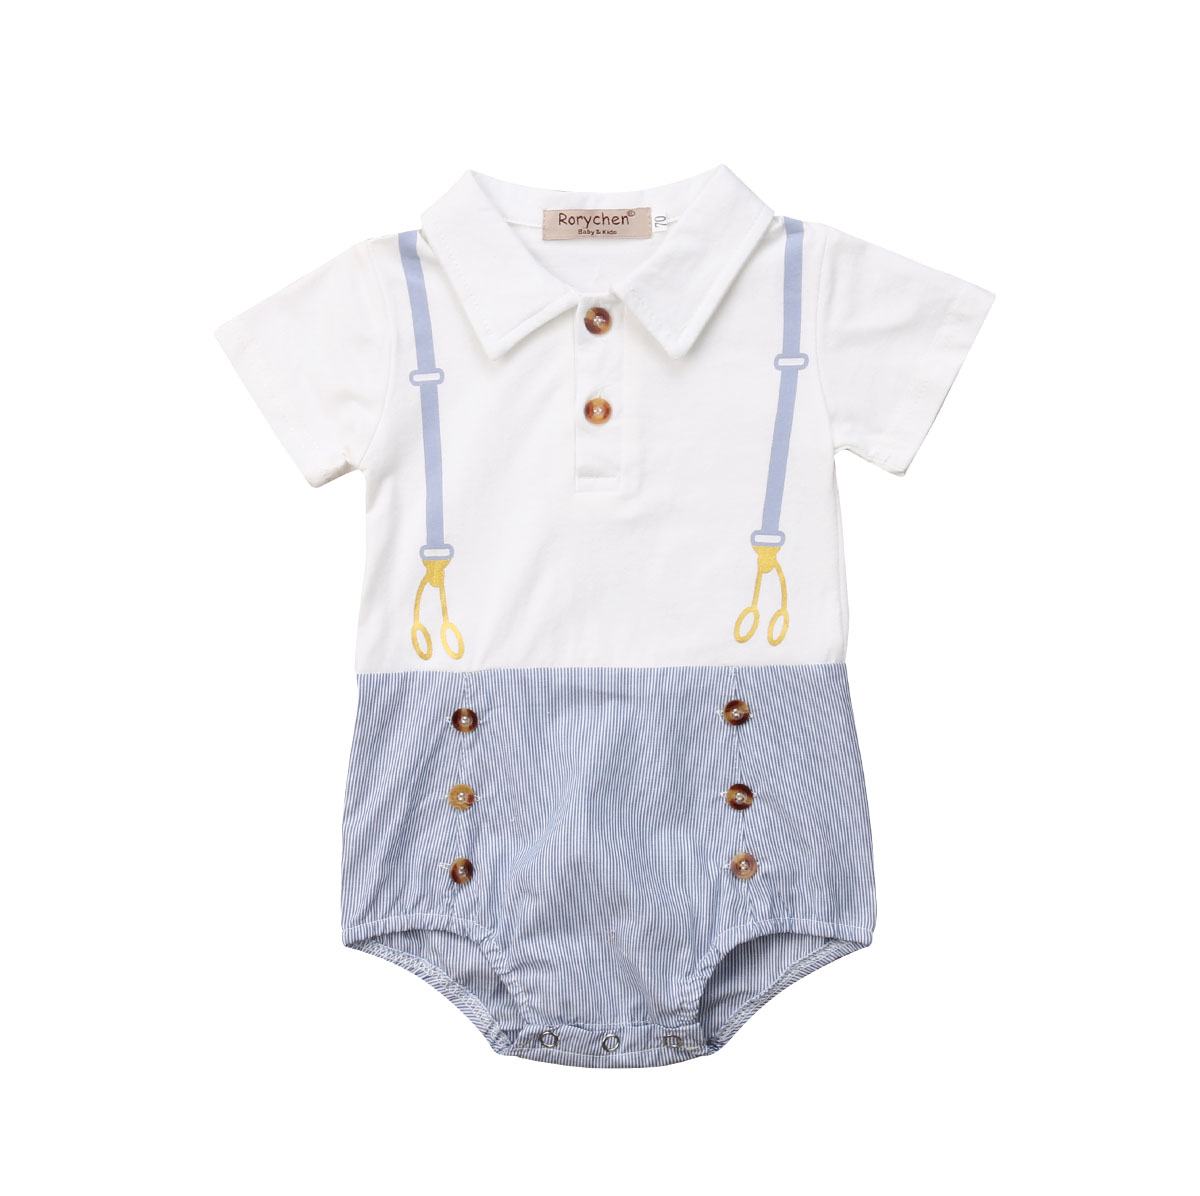 <font><b>Newborn</b></font> Toddler Infant <font><b>Baby</b></font> Kid Boy Girl Clothes Gentleman <font><b>Bodysuits</b></font> <font><b>Short</b></font> <font><b>Sleeve</b></font> <font><b>Cotton</b></font> Cute Outfits Clothing <font><b>Baby</b></font> Boys 0-24M image